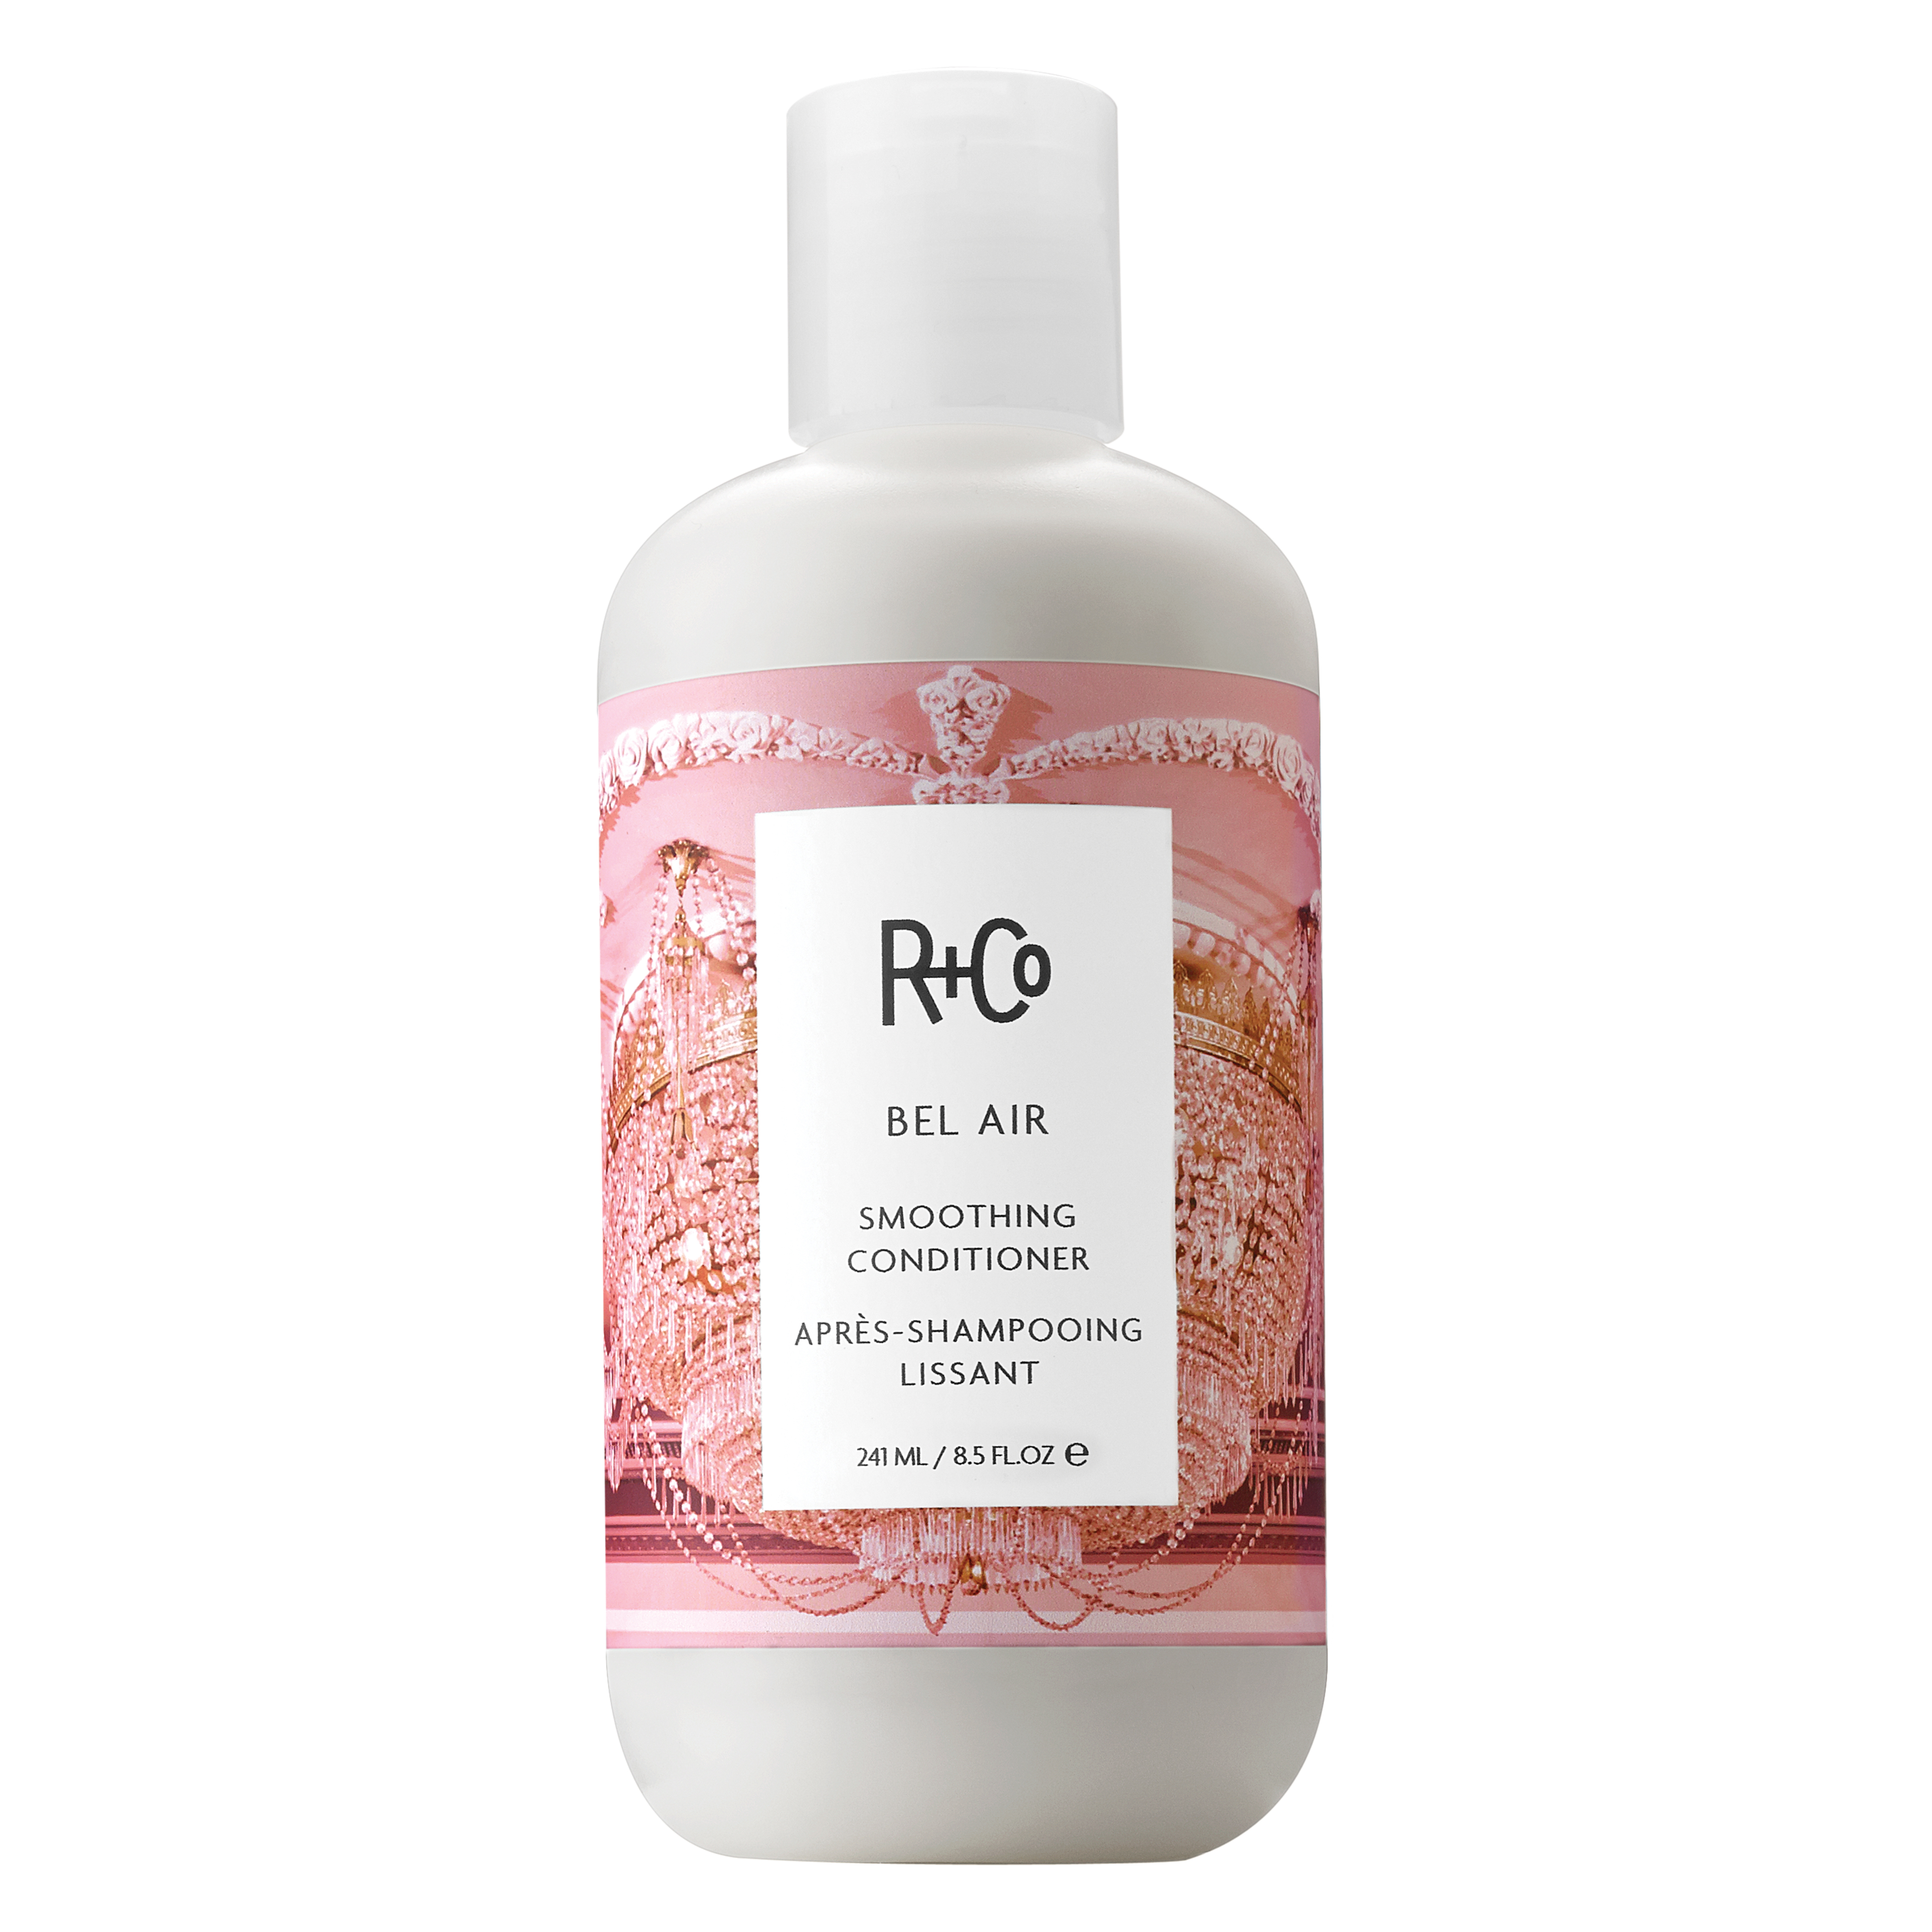 BEL AIR Smoothing Conditioner 241ml